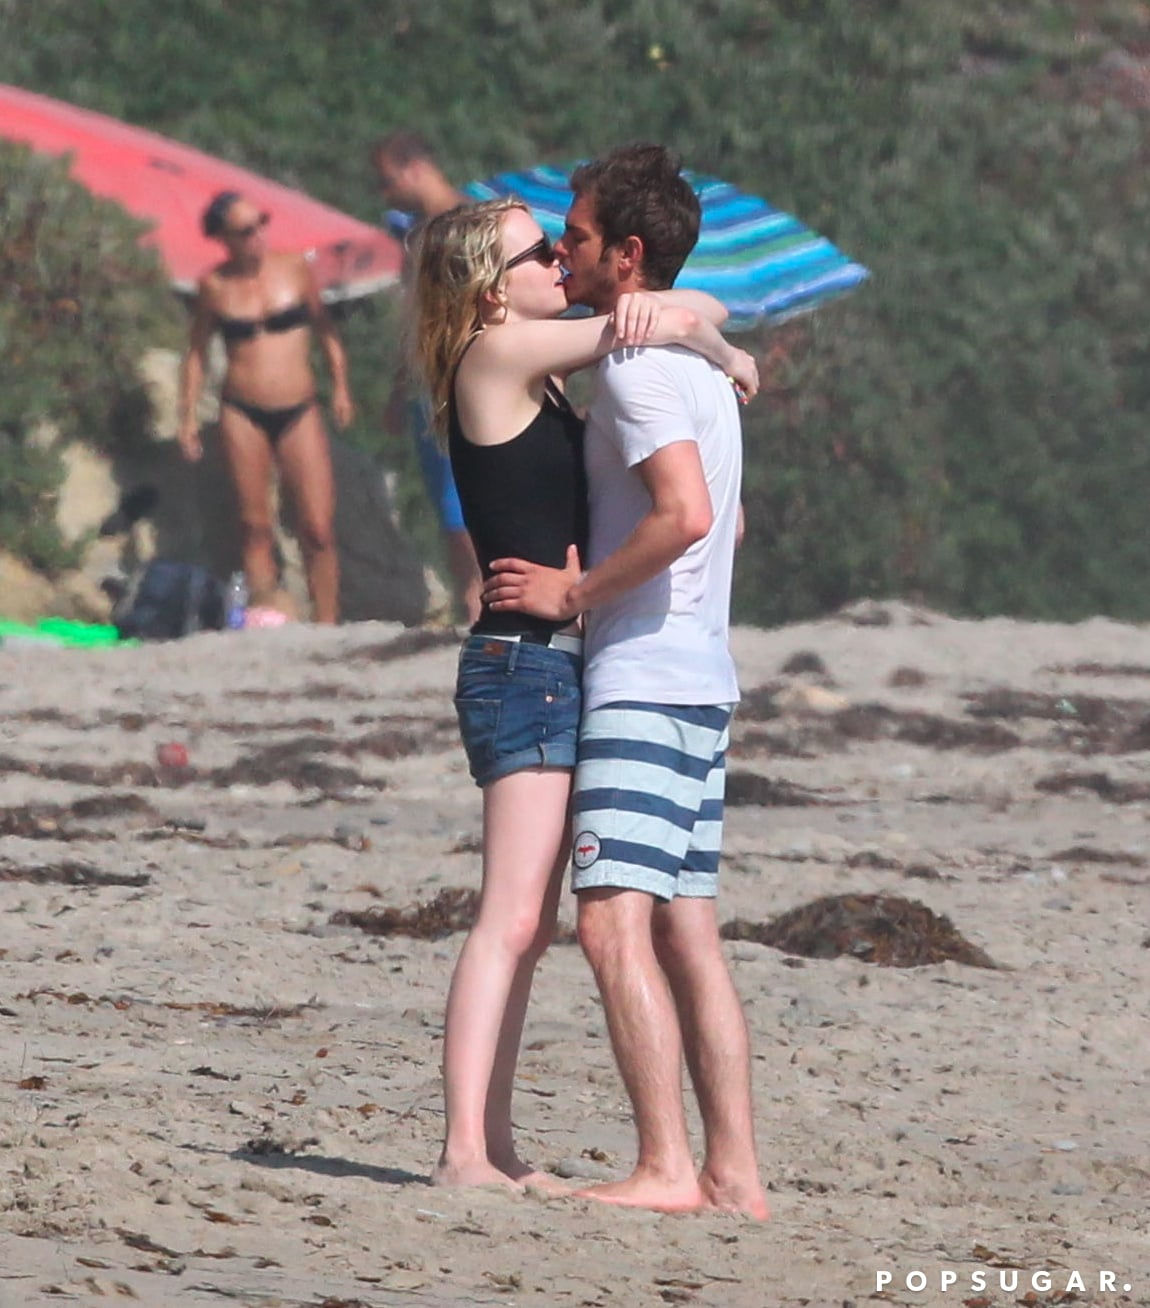 Emma Stone celebrated Andrew Garfield's birthday with lots of steamy kisses on the beach in Malibu, CA, back in August 2012.